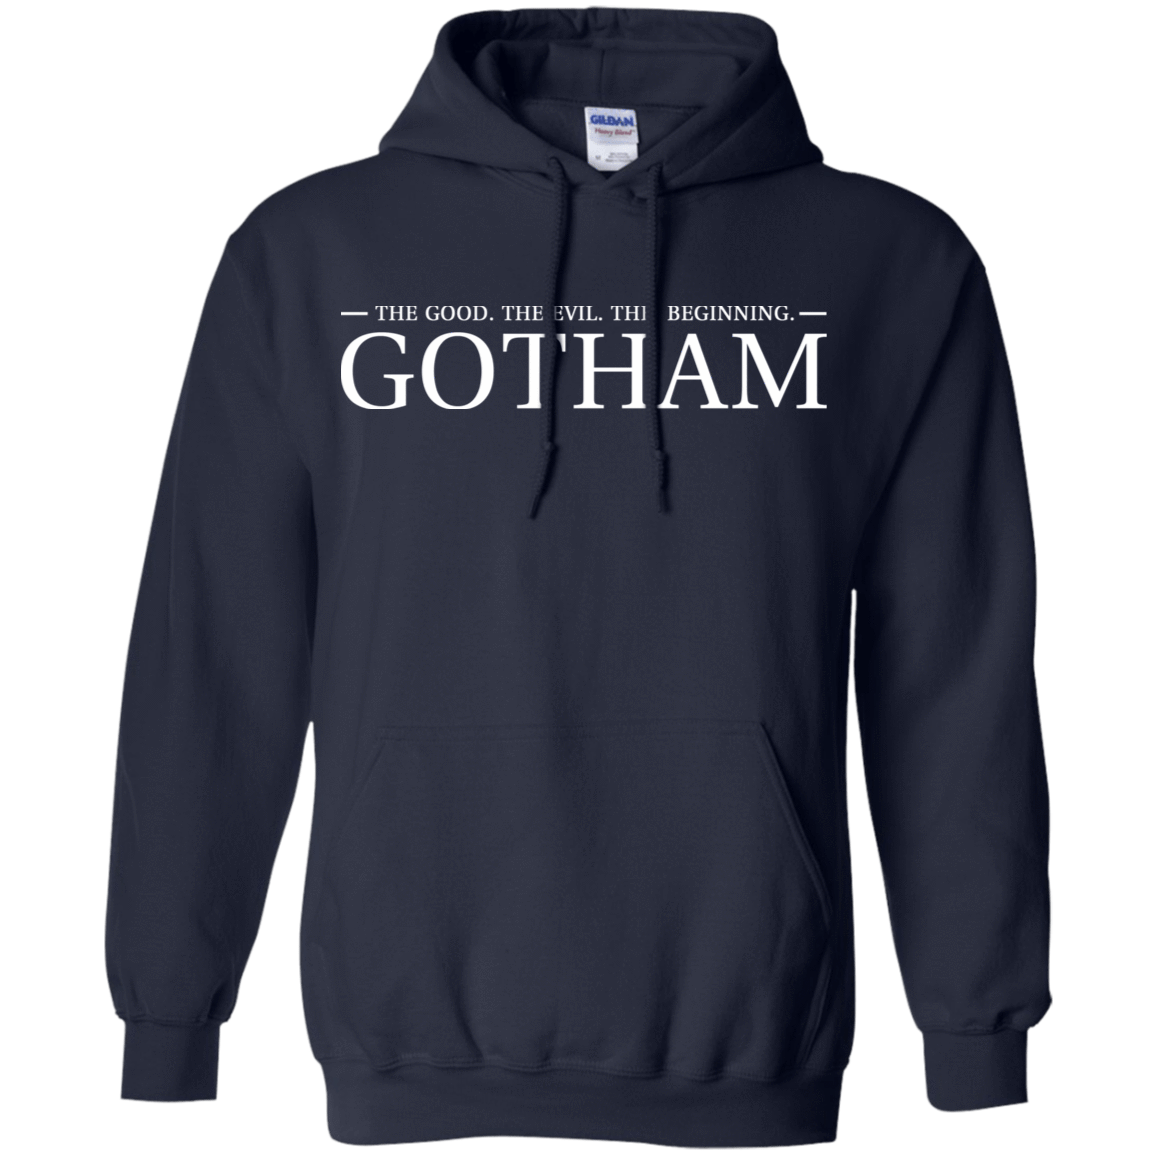 The Good. The Evil. The Beginning. Gotham 541-4742-74005252-23135 - Tee Ript